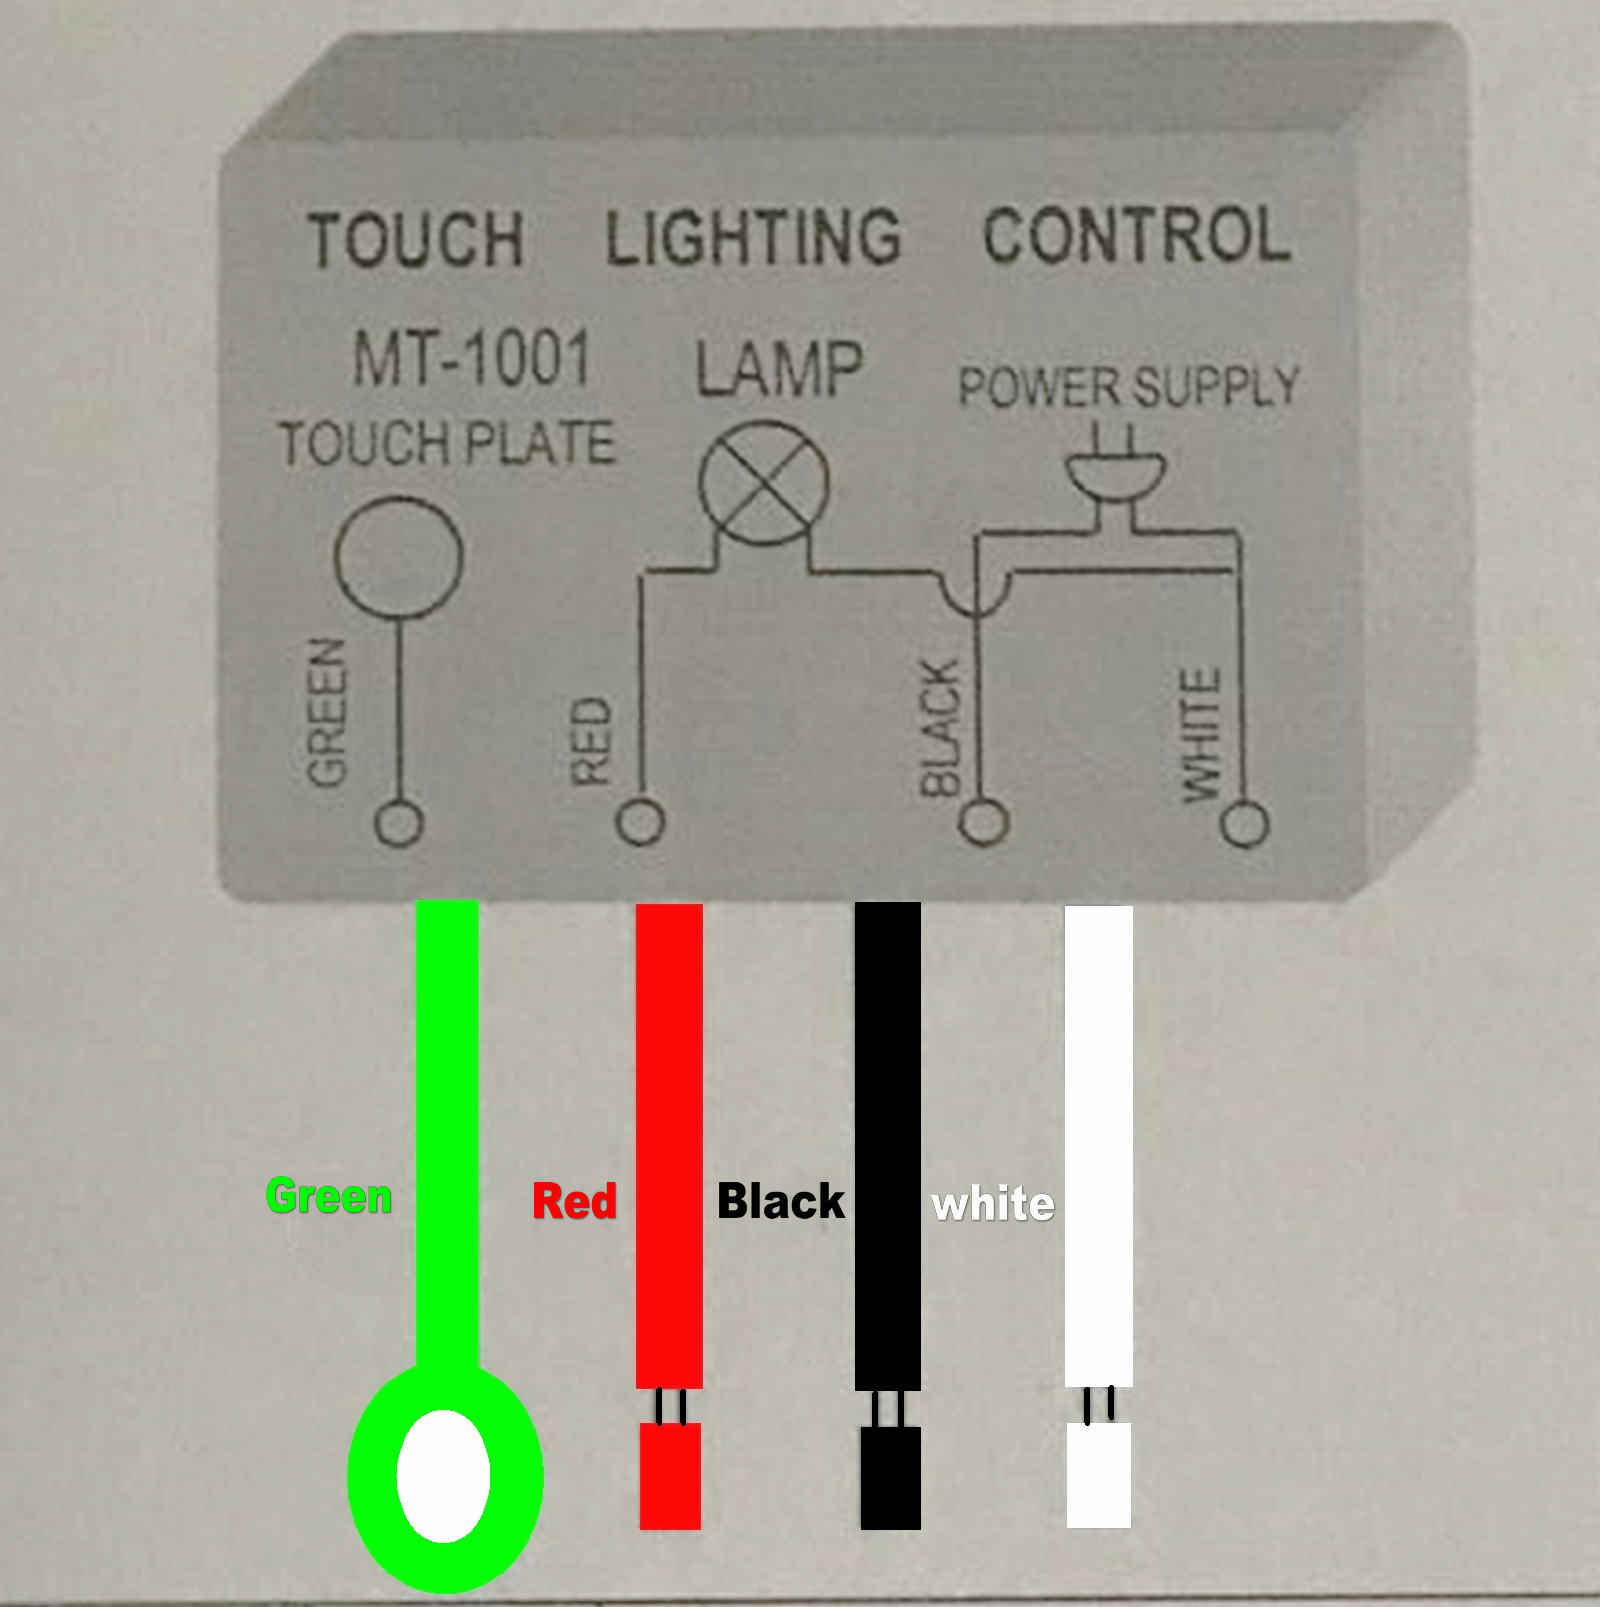 touch dimmer wiring diagram 1pc touch lighting control mt 1001 100v 120v 150w 60hz dimmer  mt 1001 100v 120v 150w 60hz dimmer